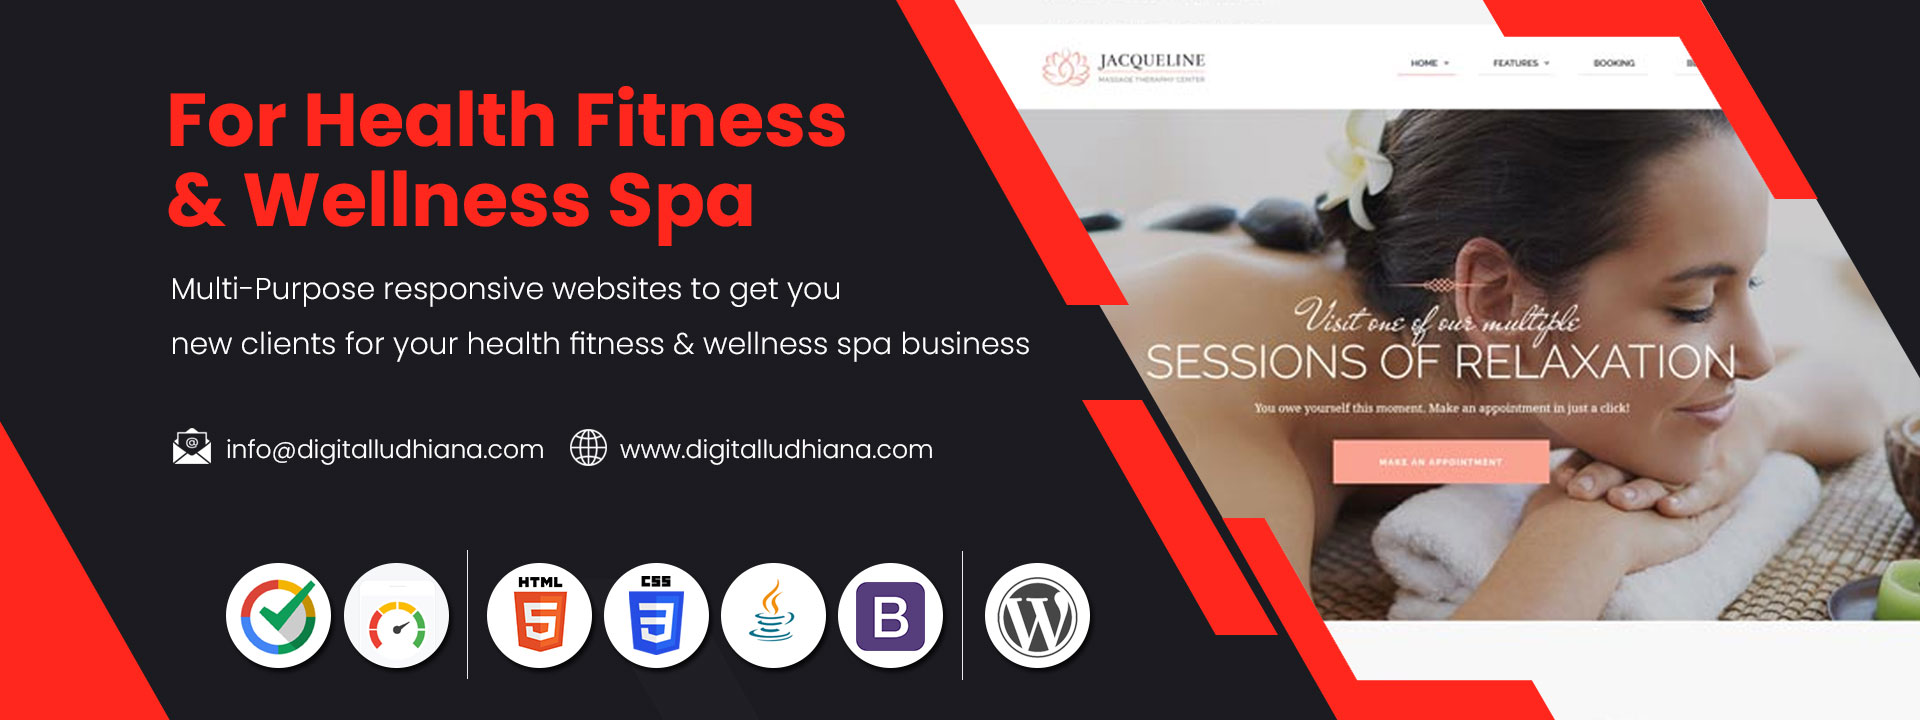 health fitness and wellness spa website designers in ludhiana